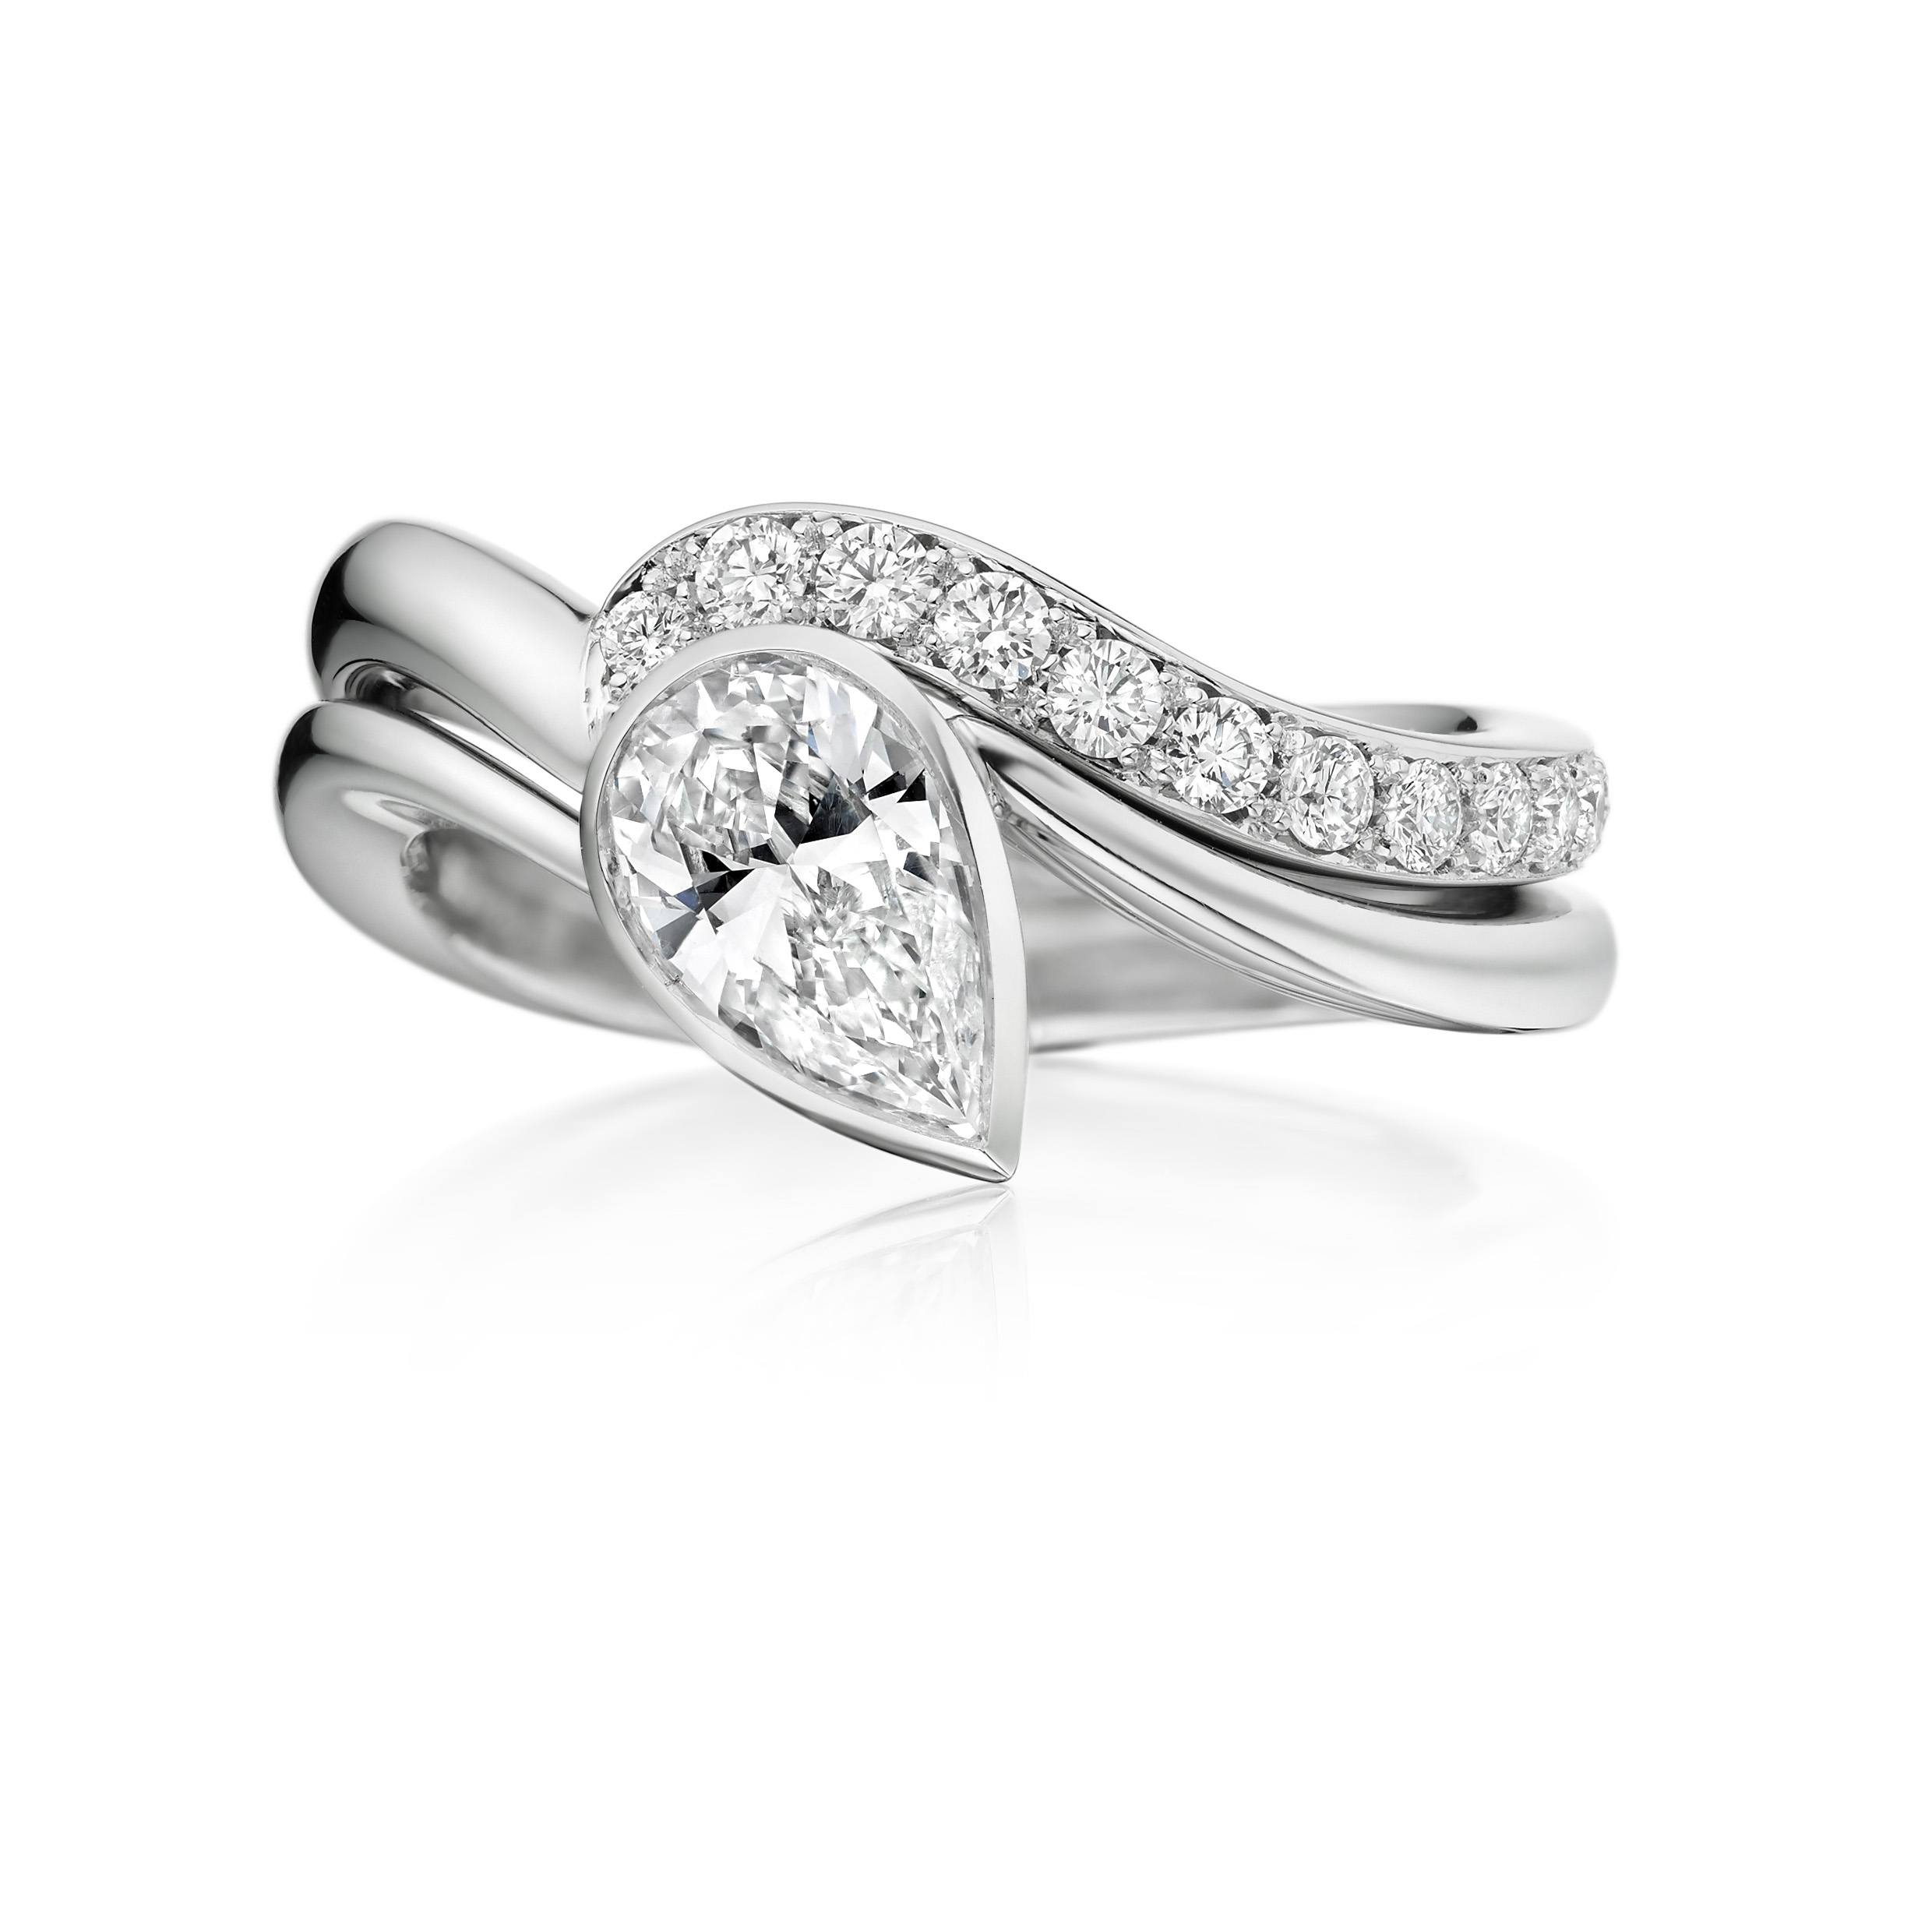 The Wave Ring with matching diamond set band